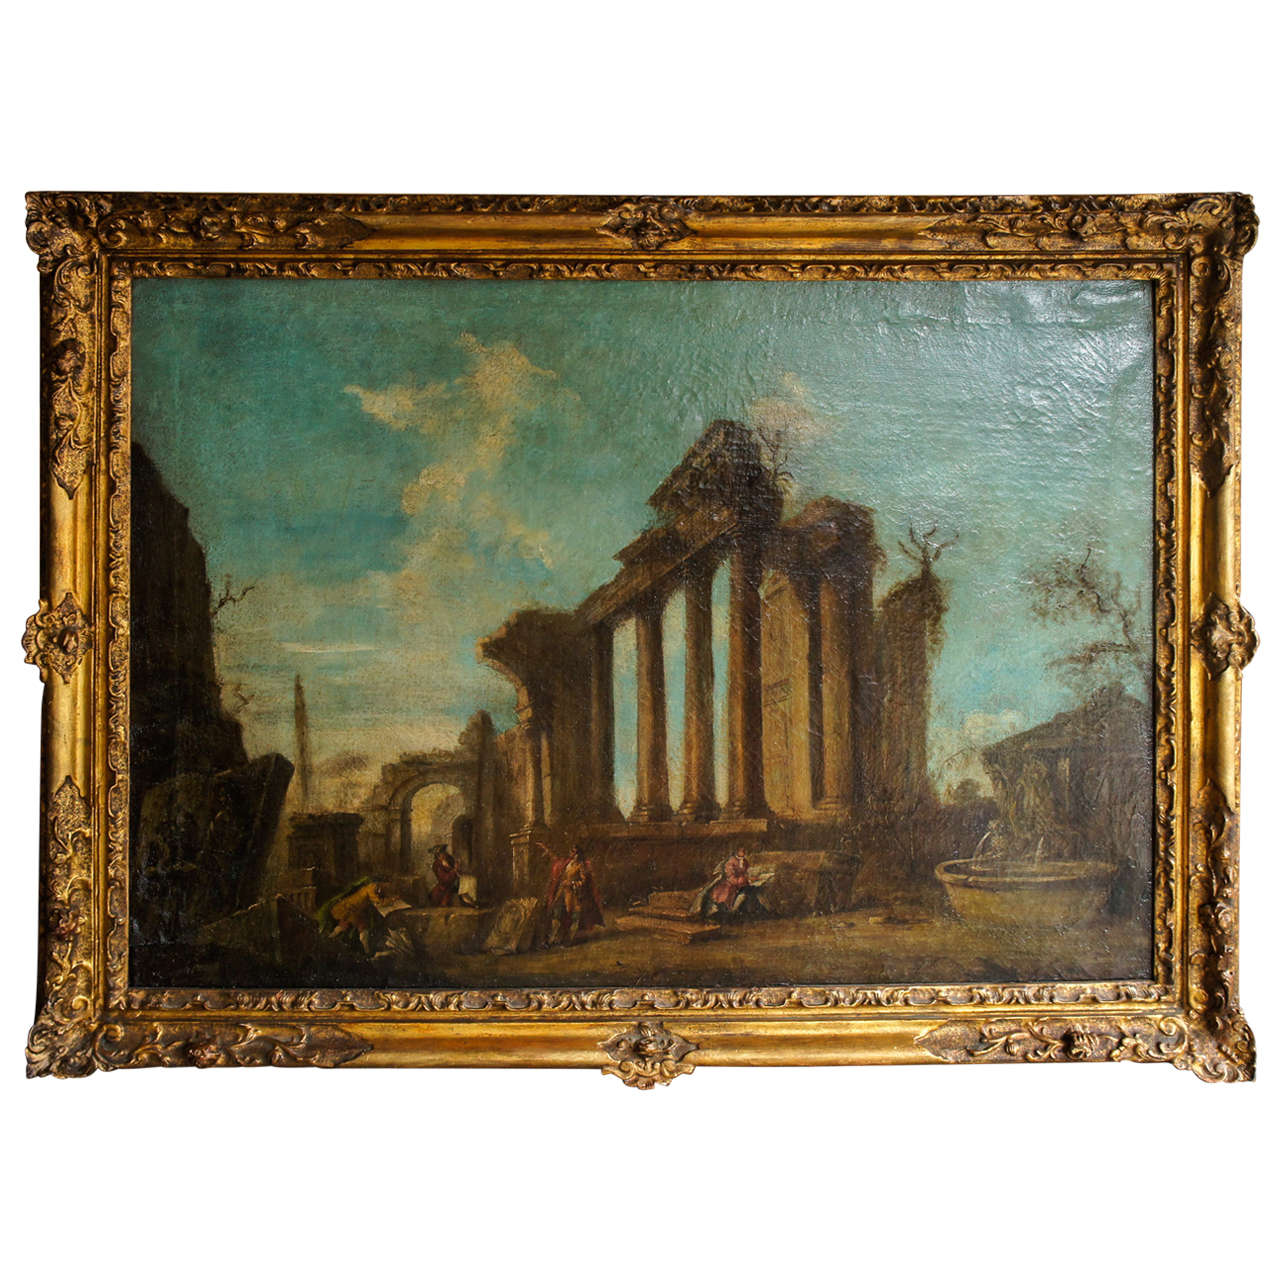 19th Century Italian Oil Painting in the Manner of Antonio Panini